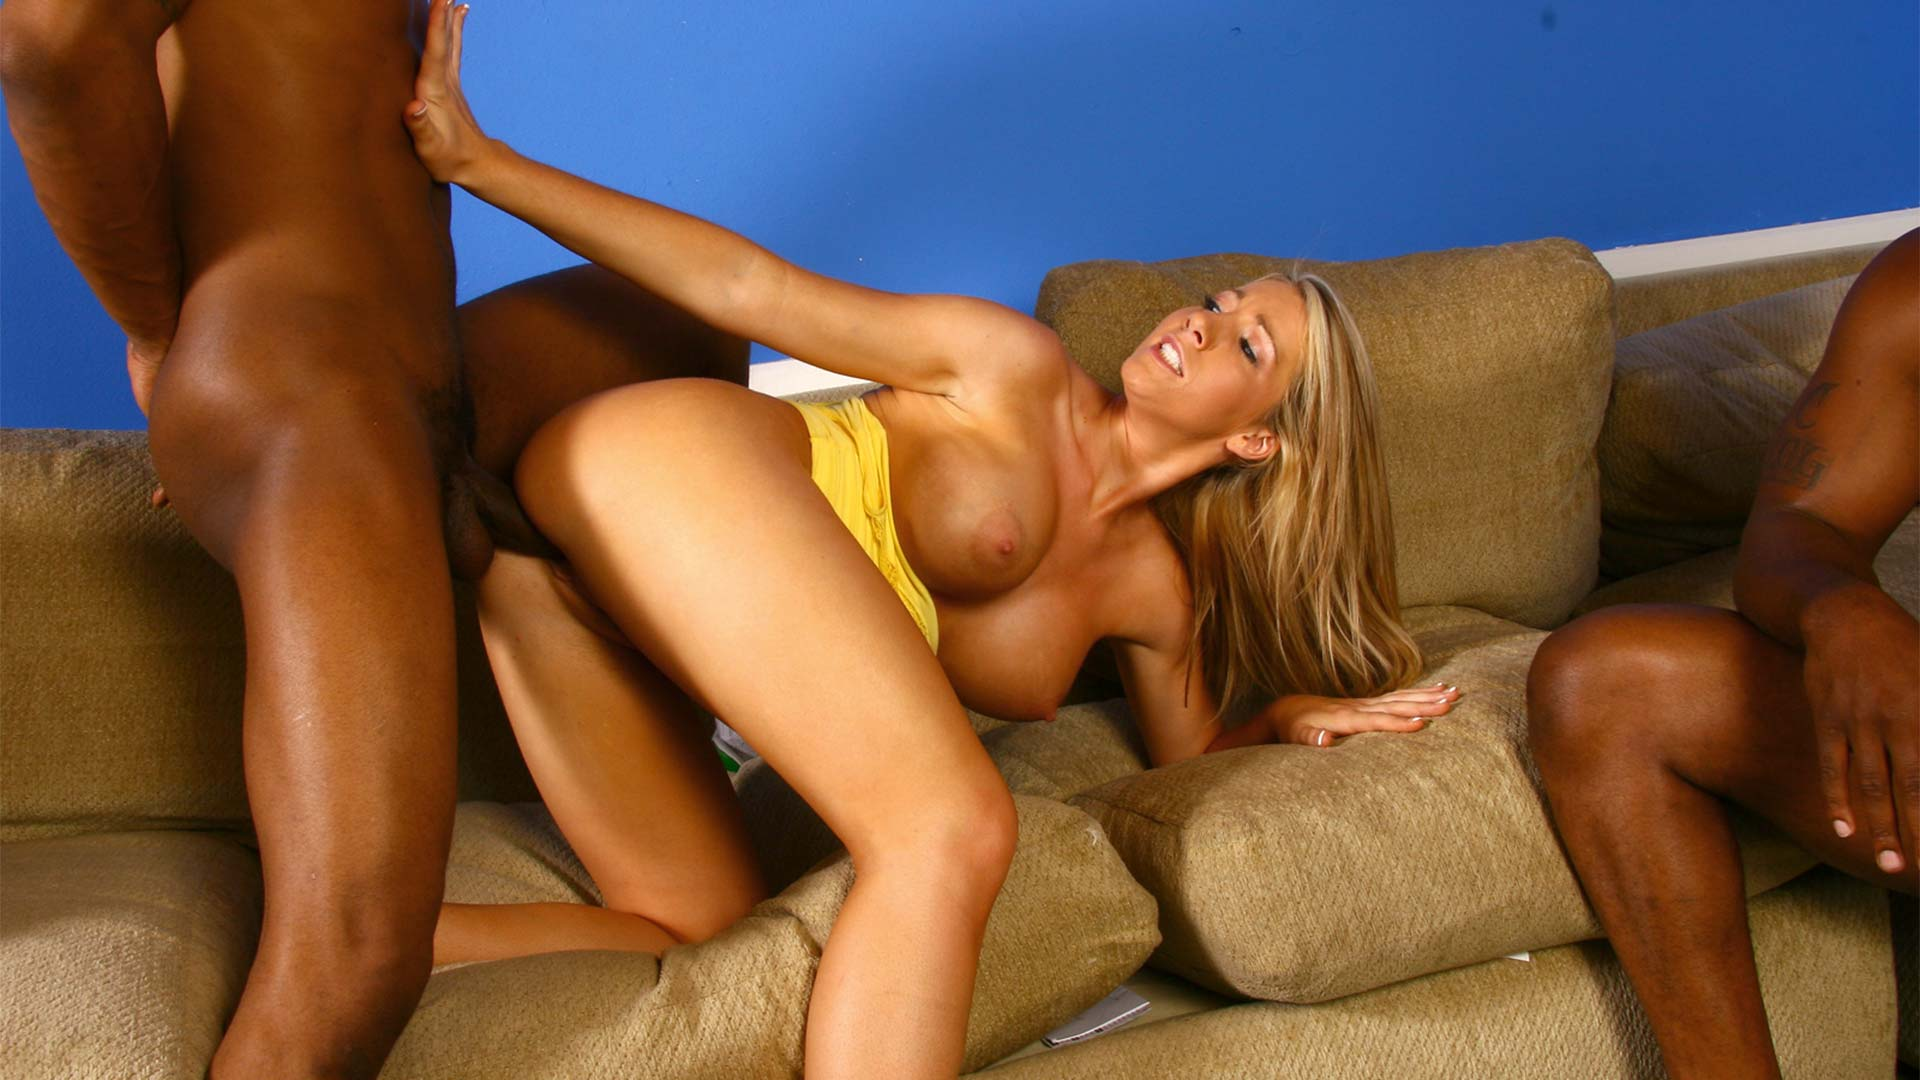 BarbCummings Black Jizz In My Womb Interracial Porn